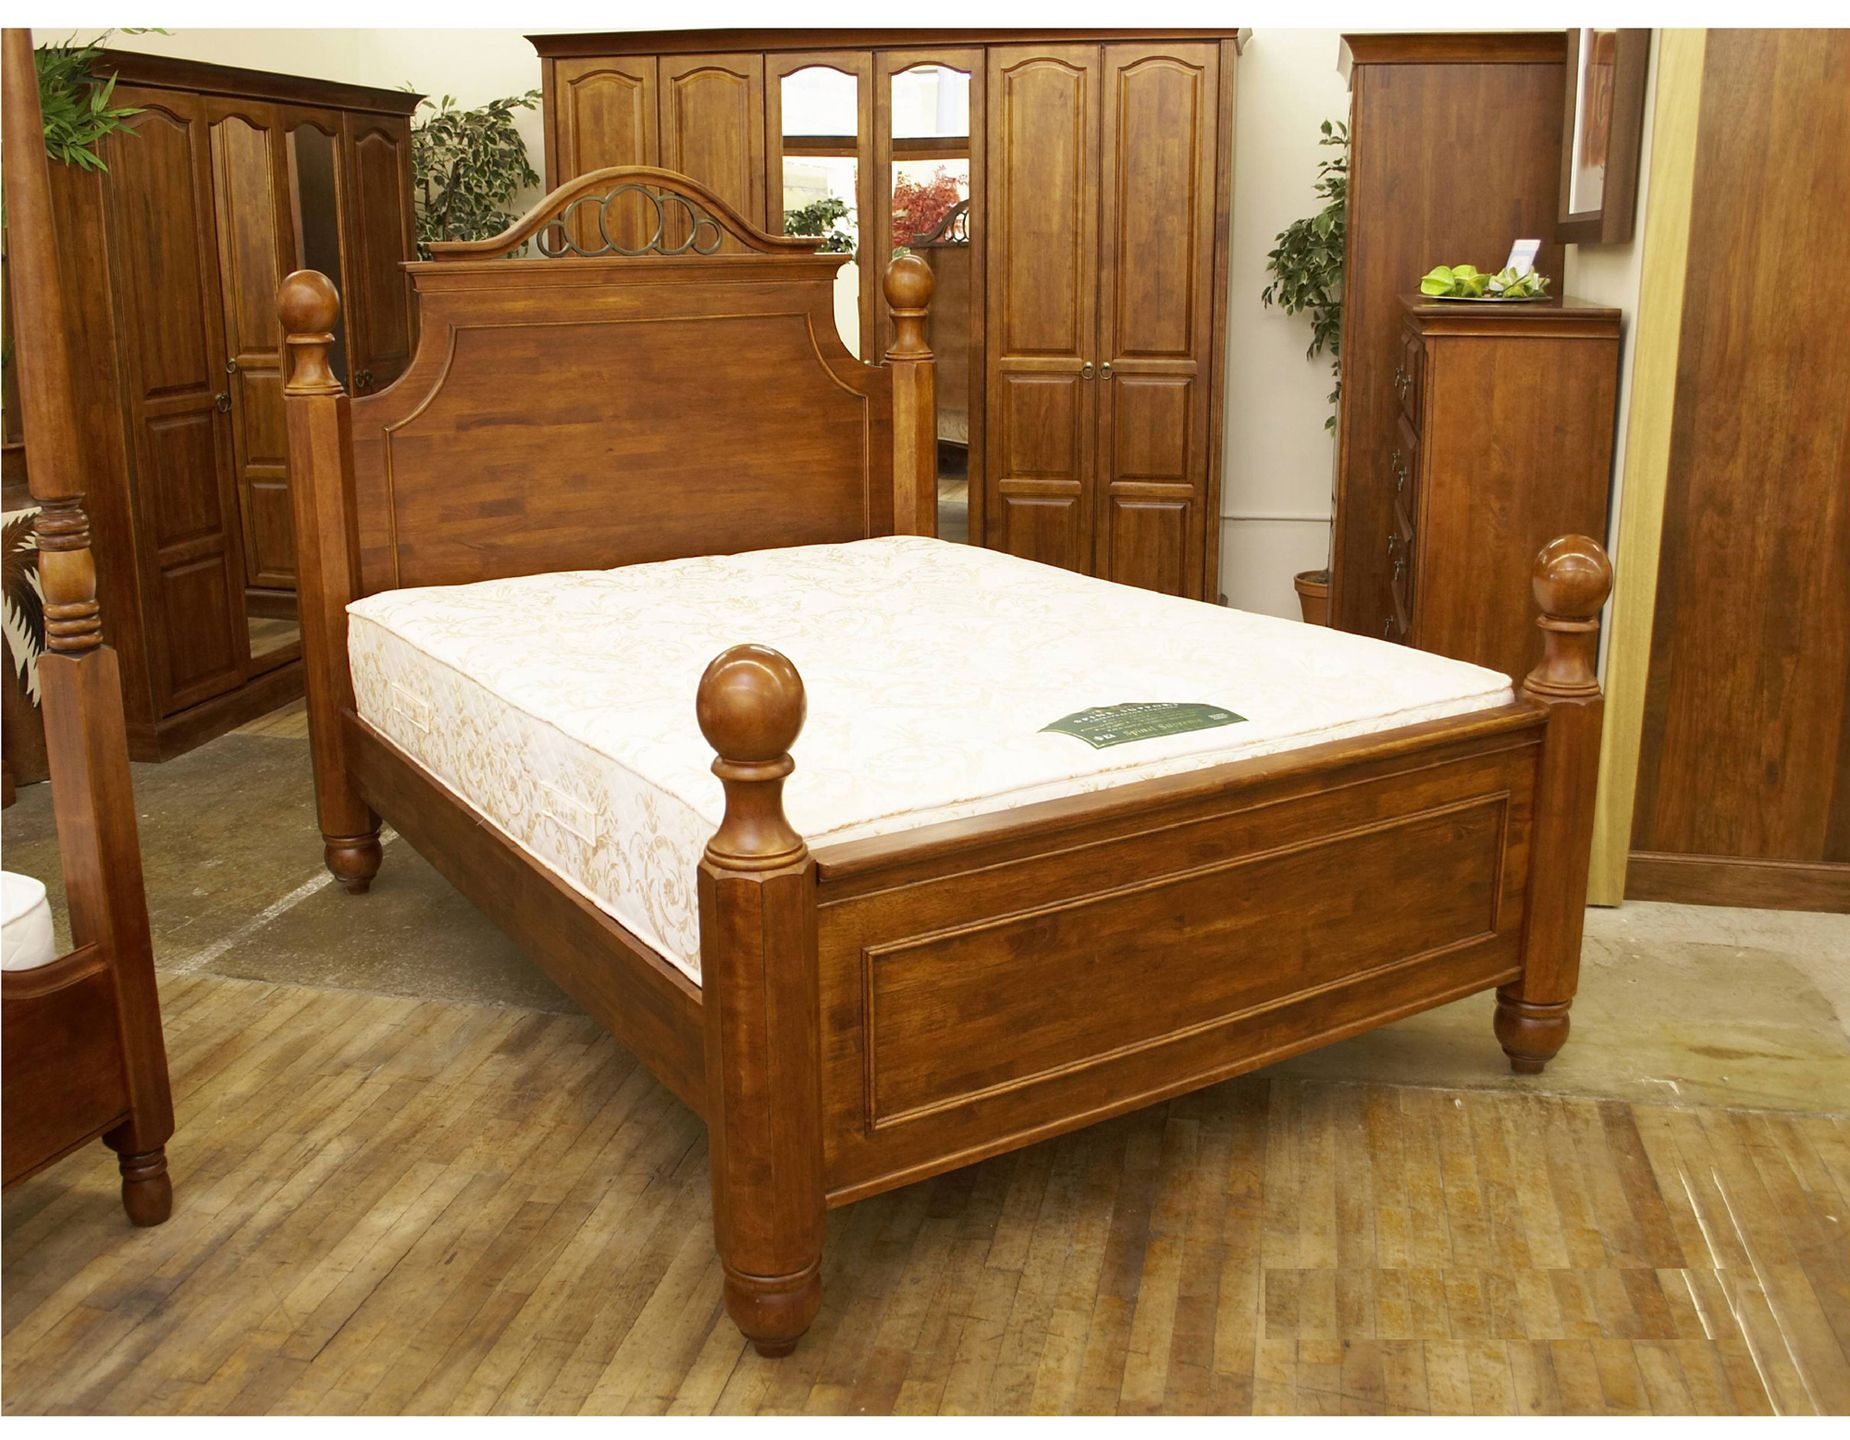 Oak Bedroom Furniture collection is handcrafted from solid golden